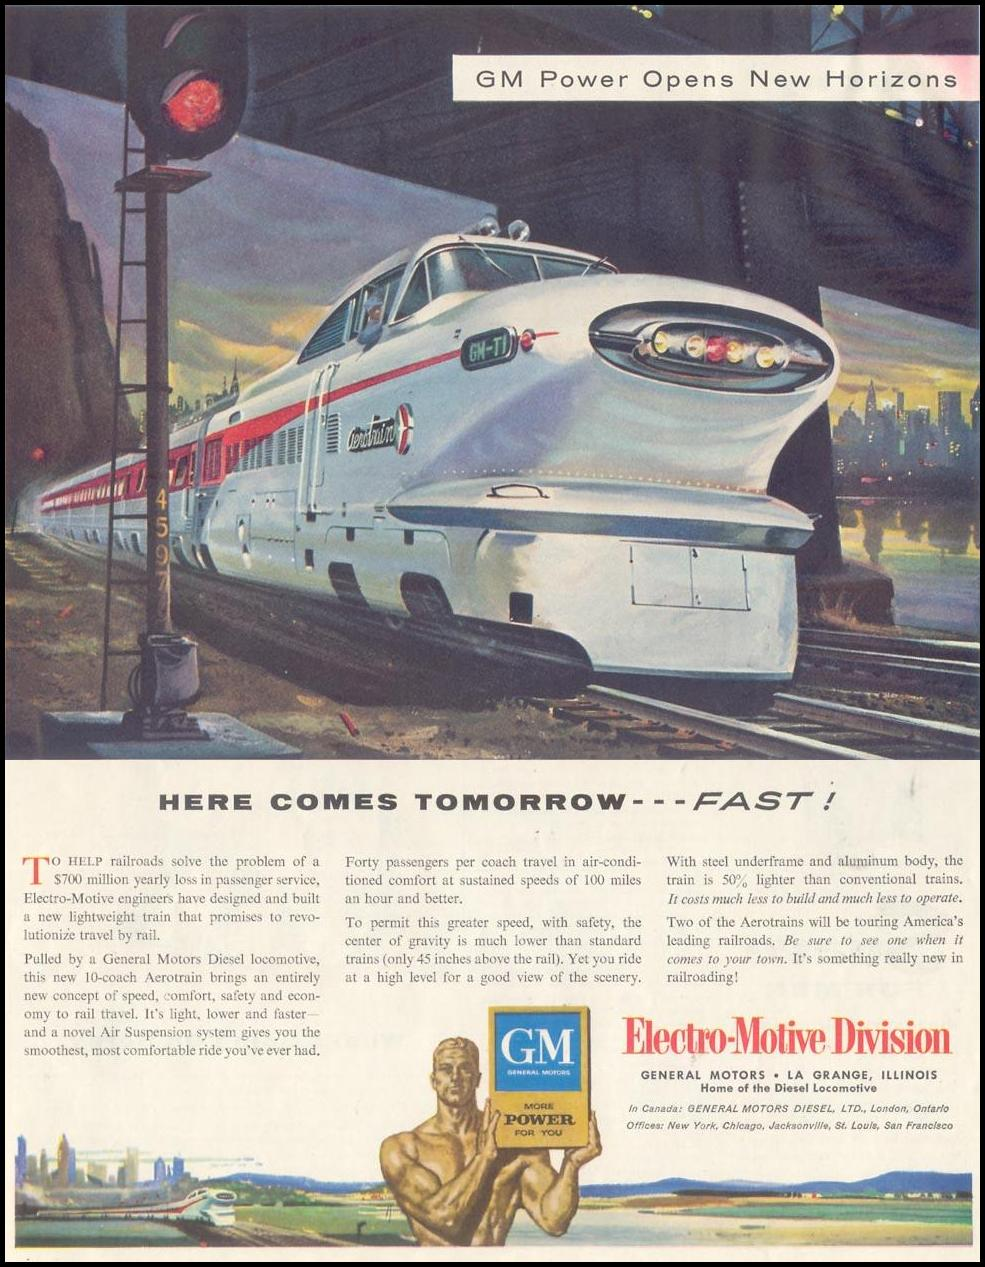 GENERAL MOTORS DIESEL LOCOMOTIVES SATURDAY EVENING POST 12/10/1955 p. 89